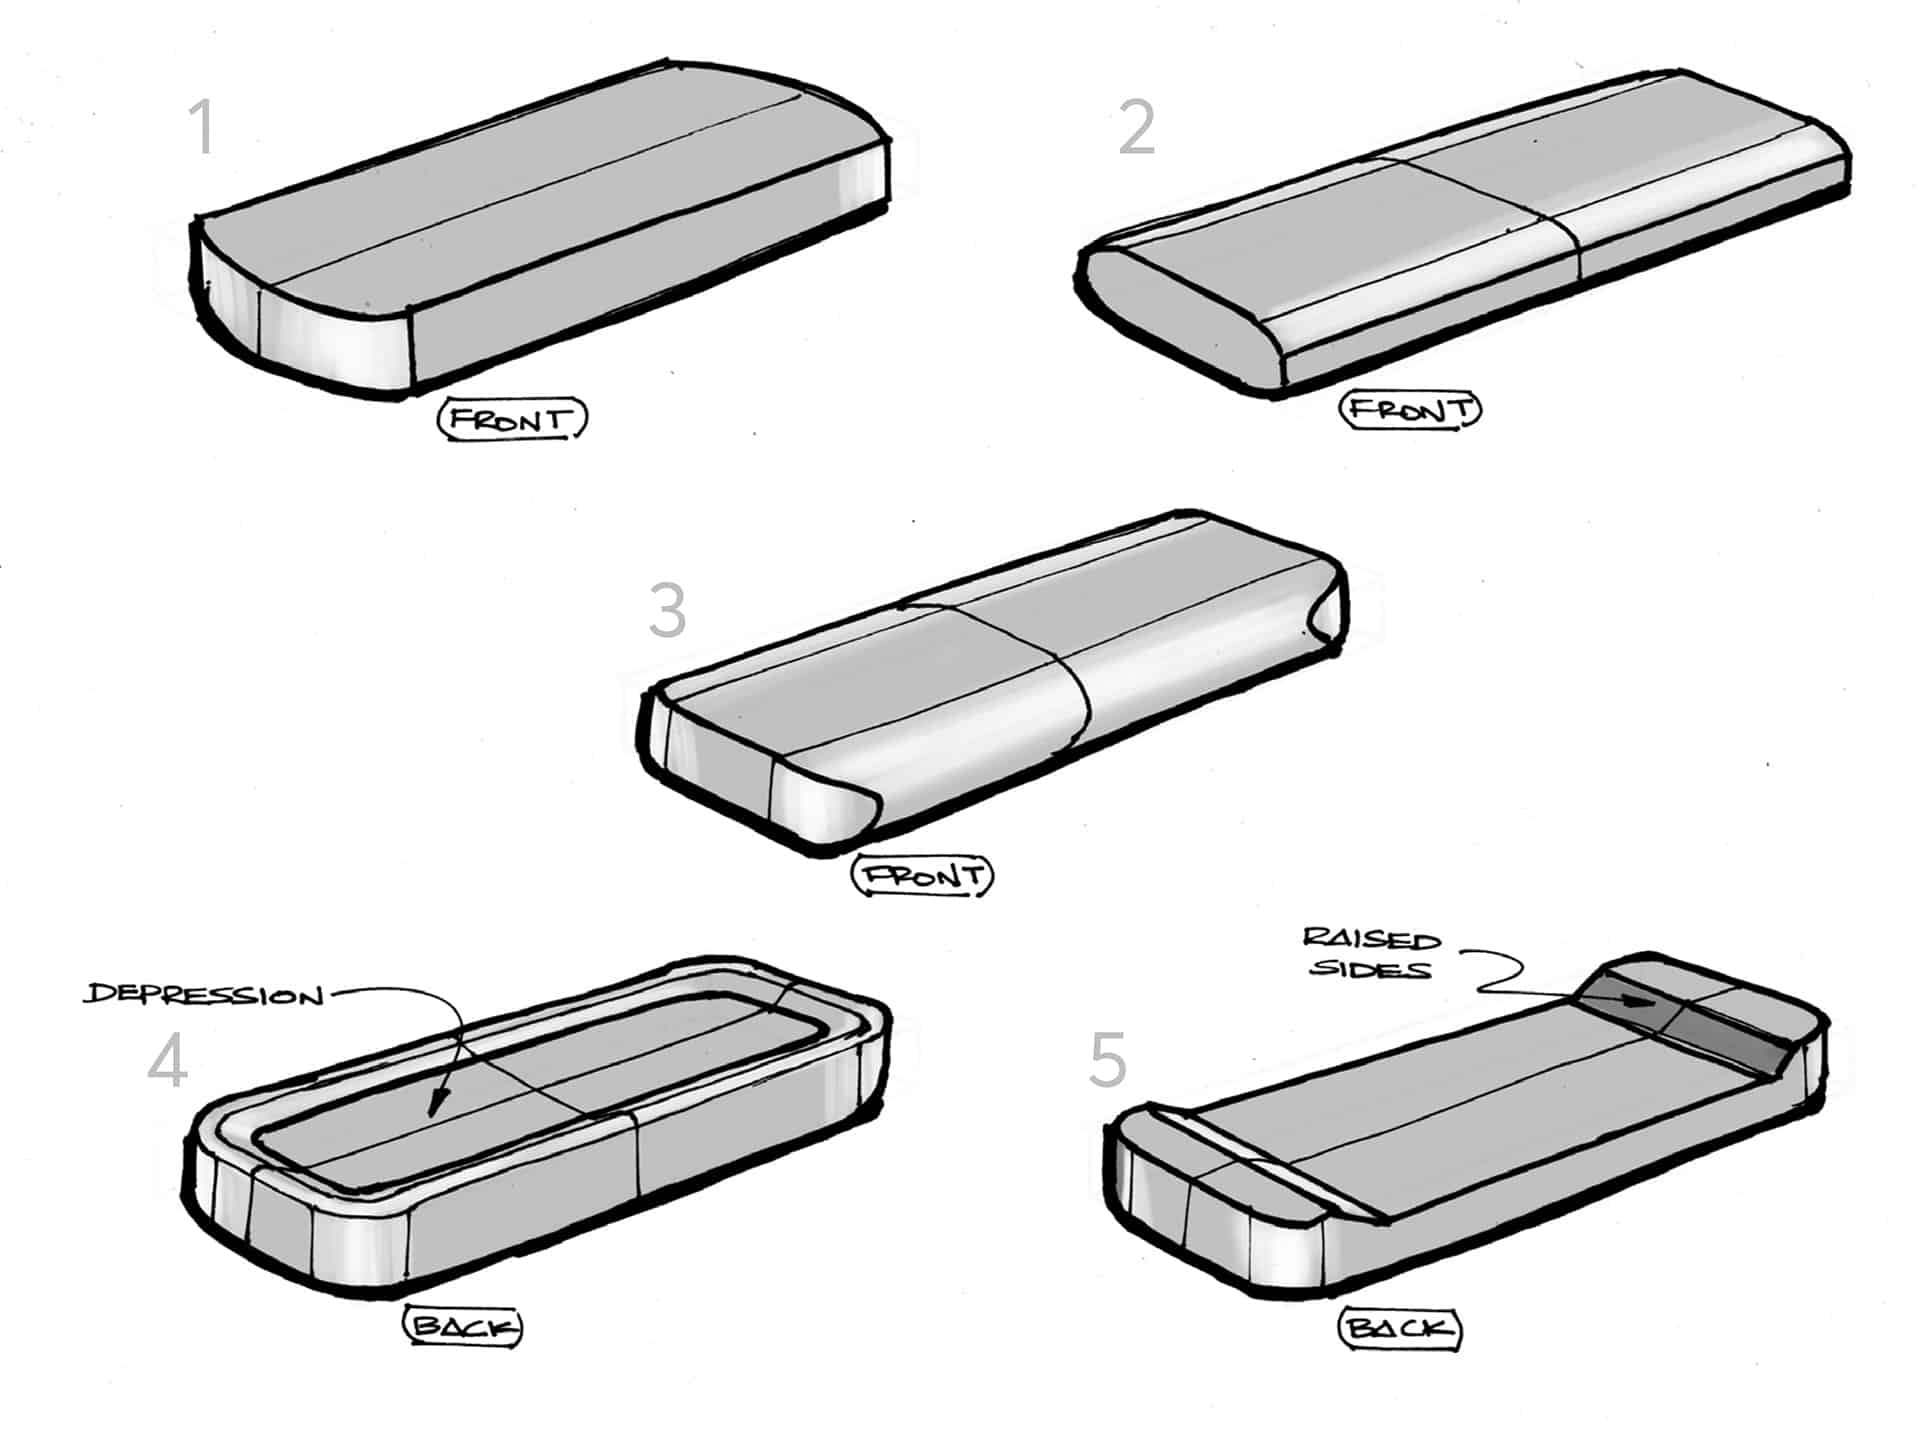 Industrial design sketches of the Modulus remote